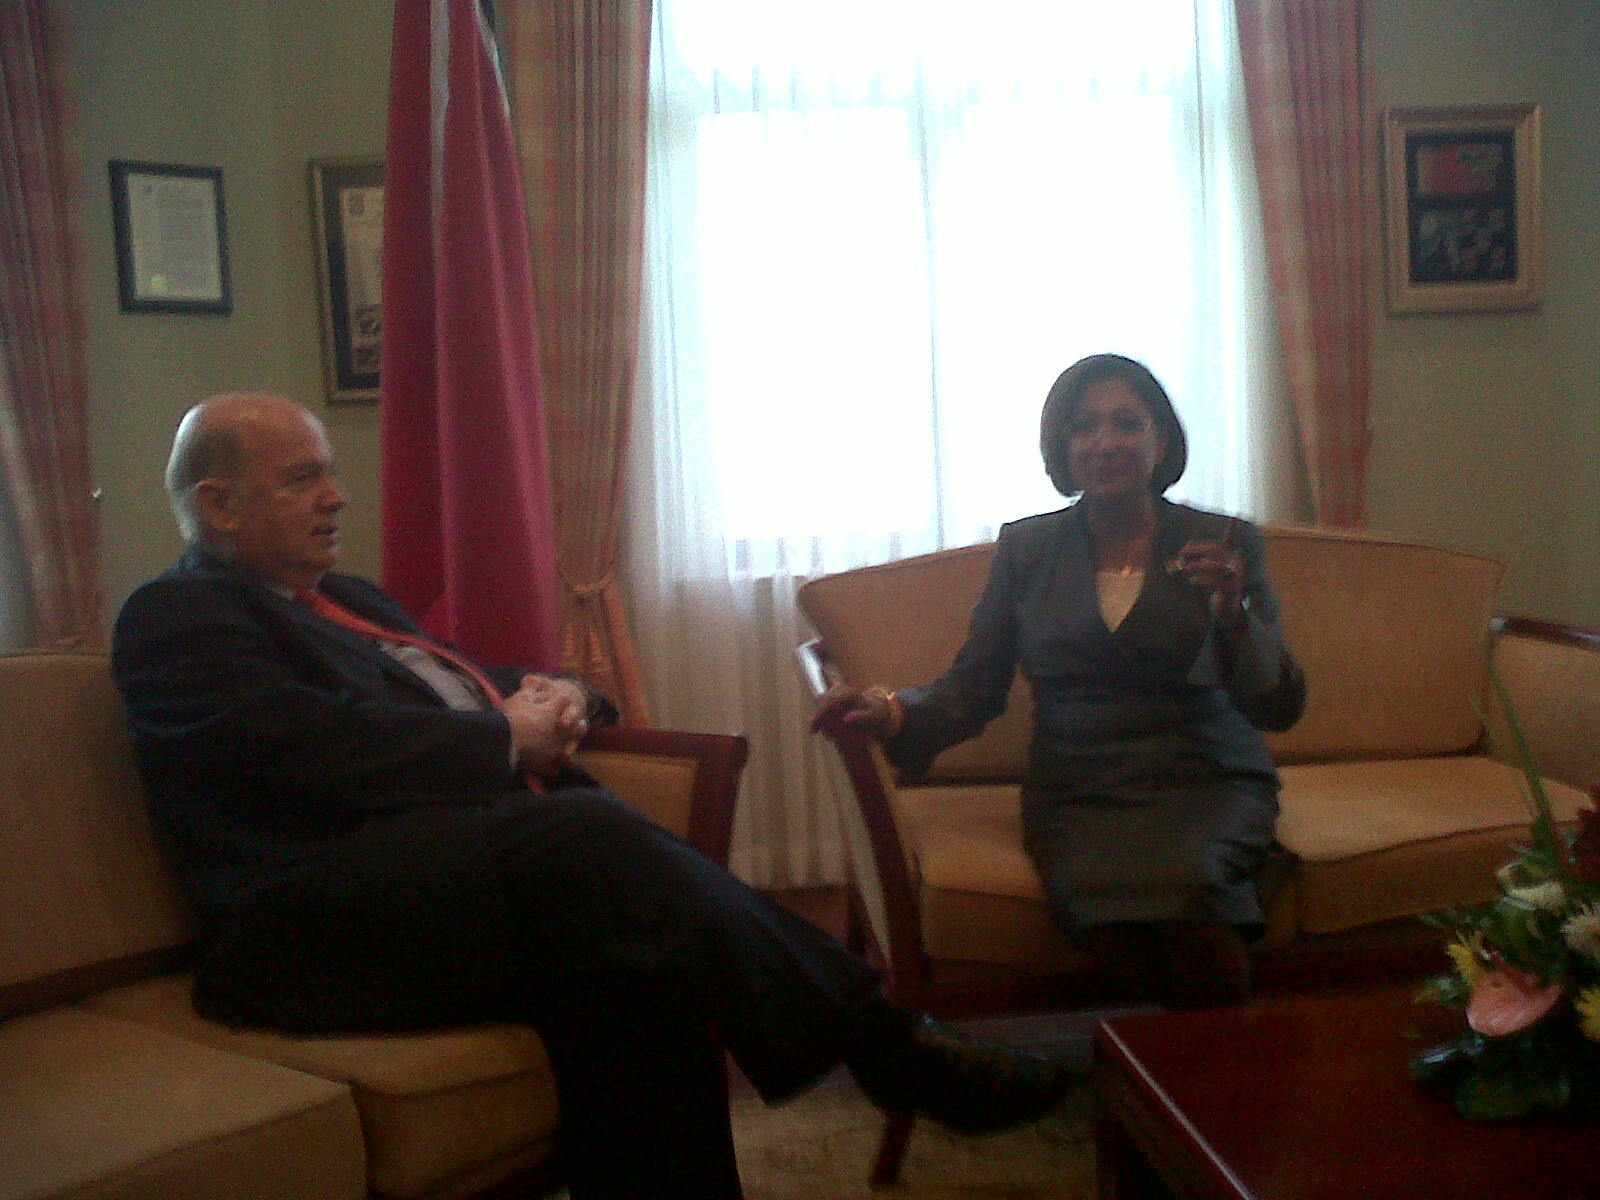 OAS Secretary General, H.E. Jose Miguel Insulza, pays a courtesy call on the Prime Minister of Trinidad and Tobago, the Honourable Kamla Persad-Bissessar, during his visit to Trinida and Tobago to inaugurate MISPA III.